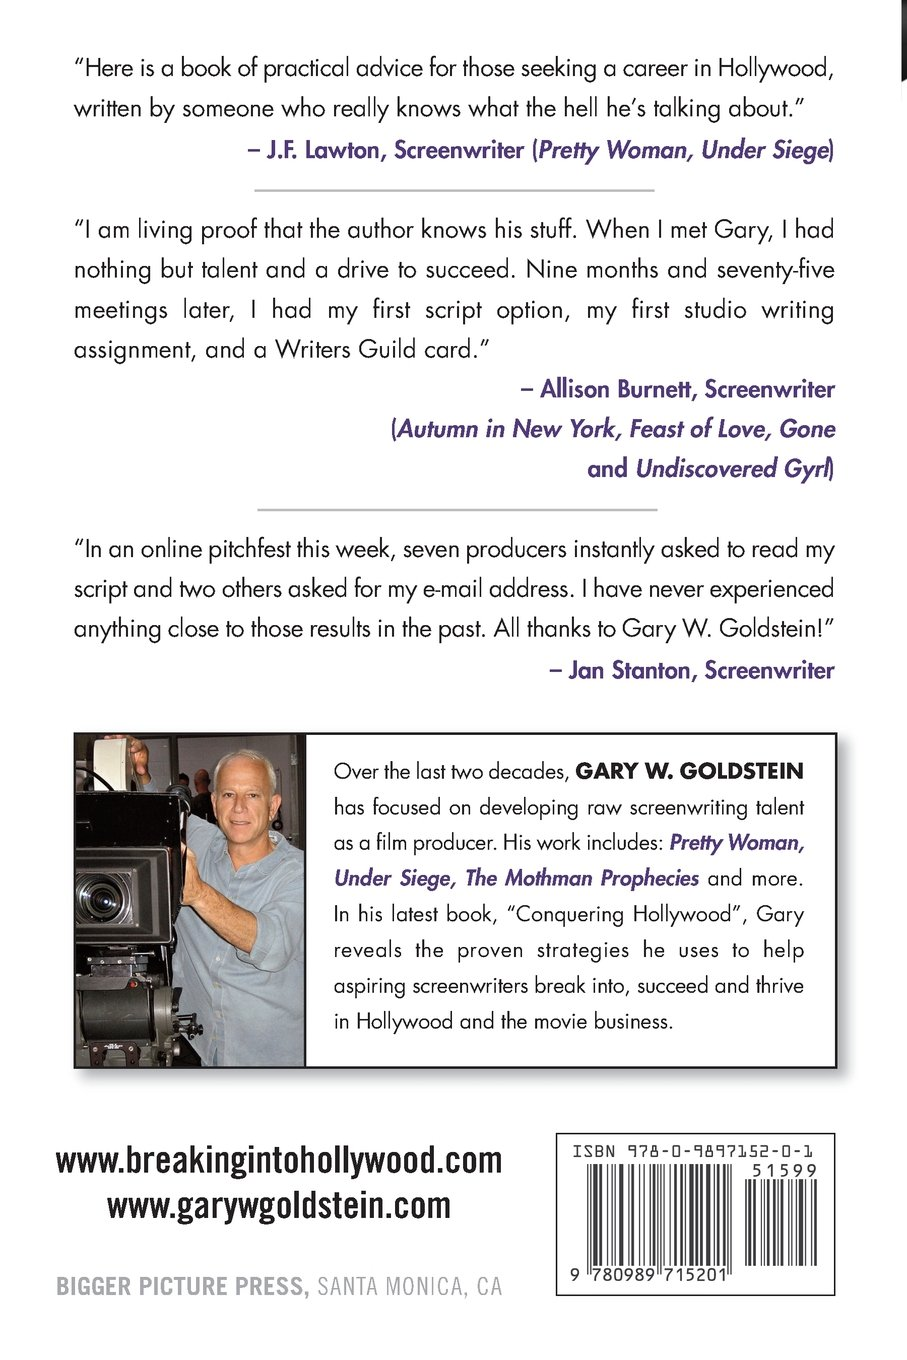 Conquering hollywood the screenwriters blueprint for career conquering hollywood the screenwriters blueprint for career success gary w goldstein jeanne mccafferty 9780989715201 amazon books fandeluxe Image collections